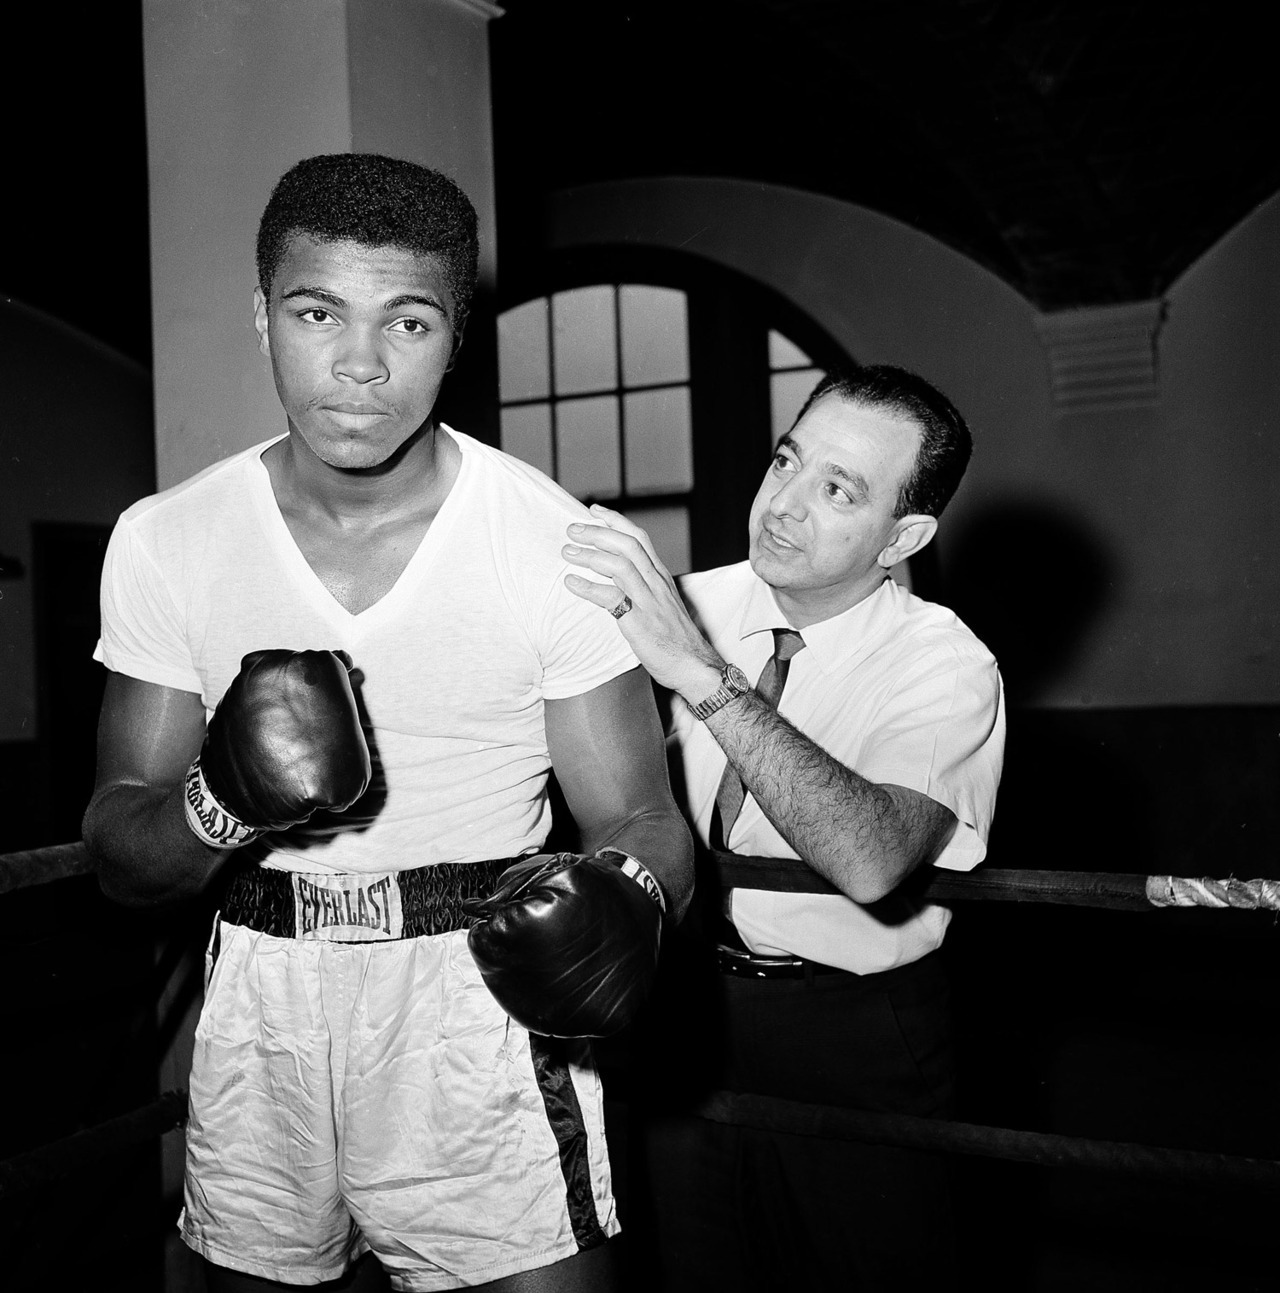 Dan Grossi—AP Ali with his trainer Angelo Dundee in New York City, 1962. The AP has reported that Angelo Dundee, Muhammad Ali's trainer, has died. Dundee and Ali were pictured together in LightBox's slideshow celebrating the boxer's 70th birthday. Read Dundee's thoughts on Ali and see more here.